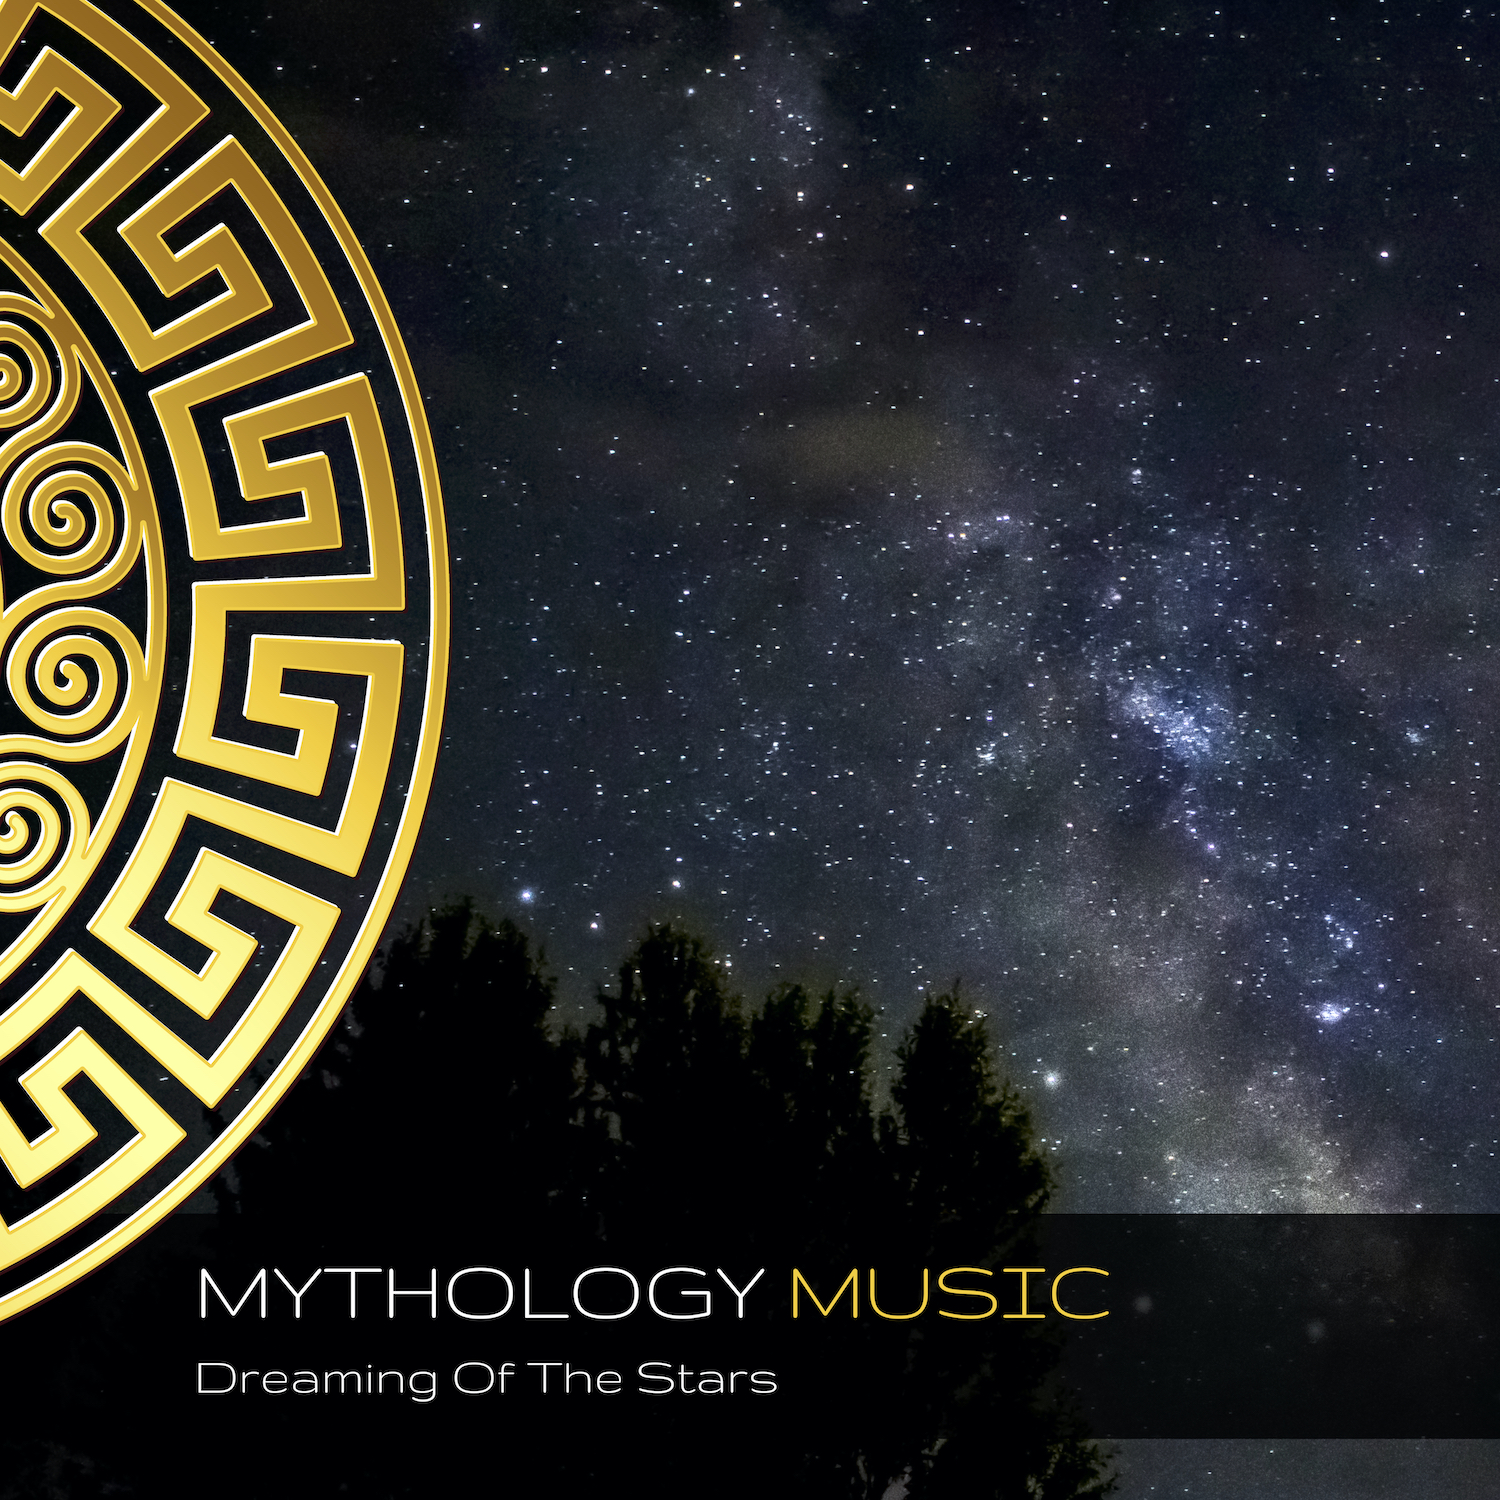 Mythology Music - Dreaming Of The Stars